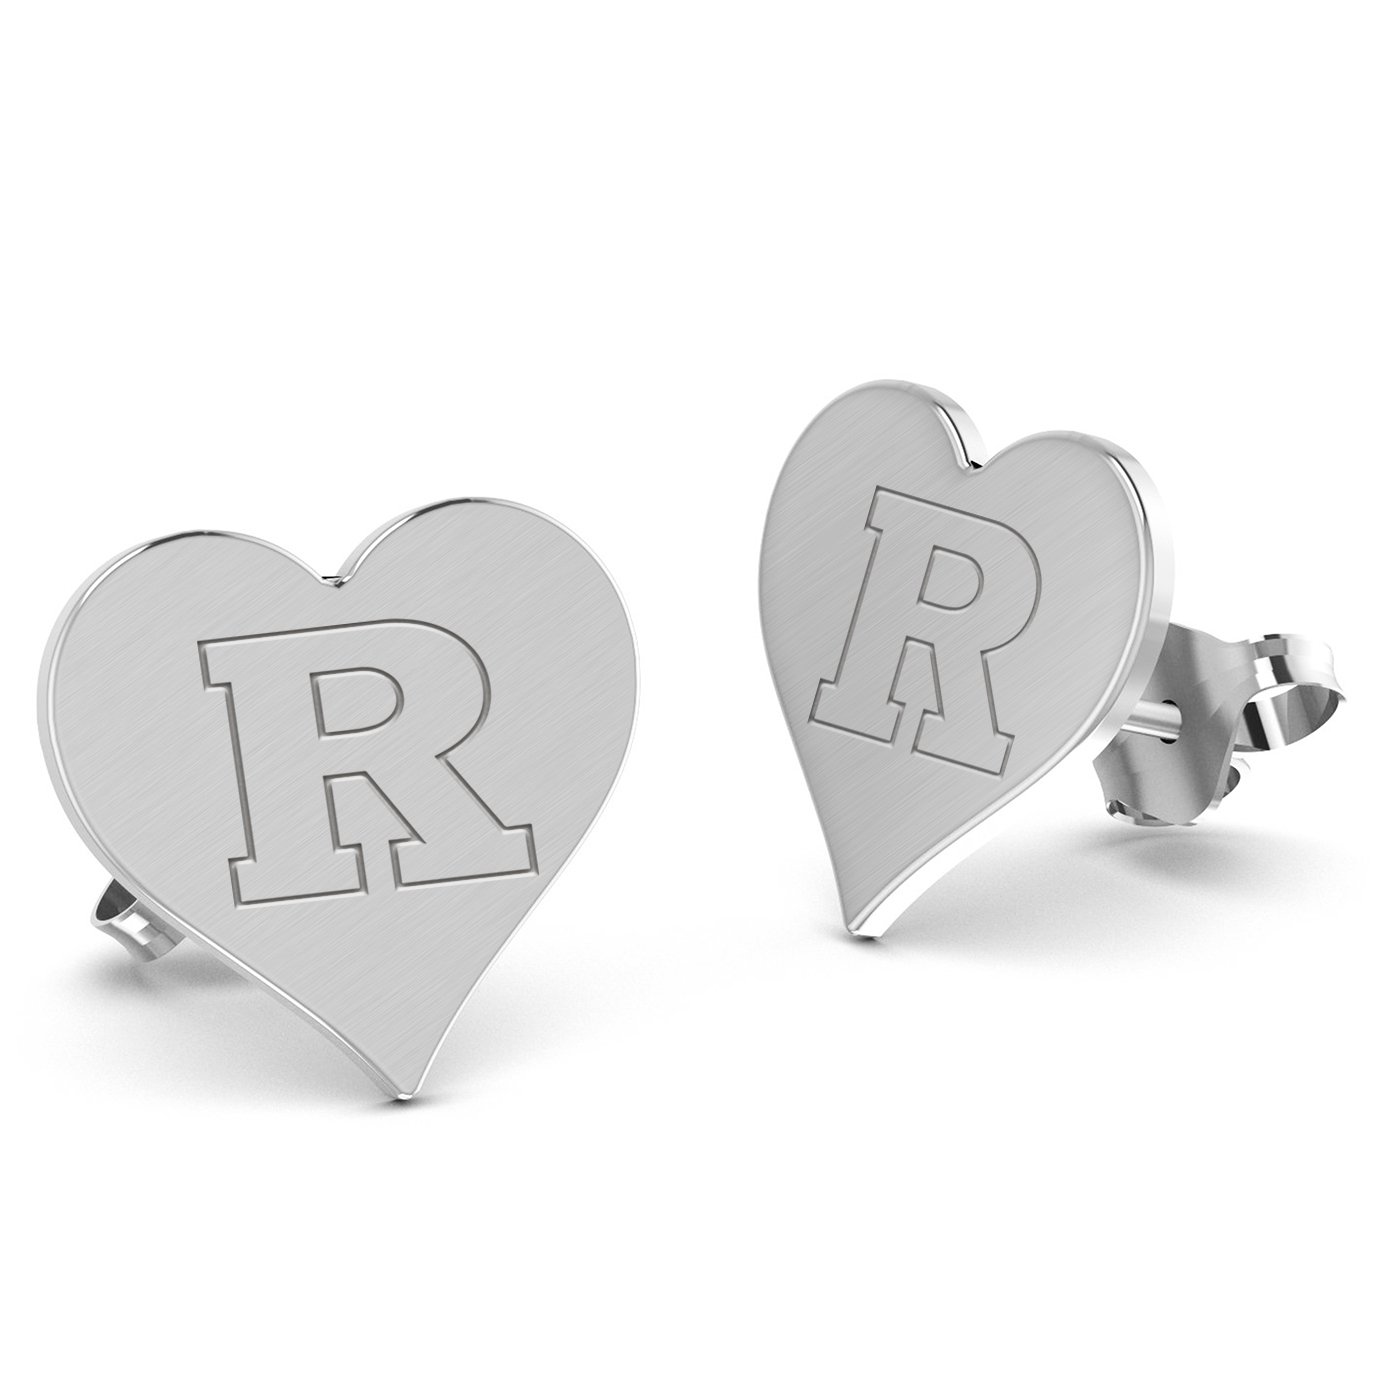 Rutgers Scarlet Knights Heart Stud Earring See Image on Model for Size Reference